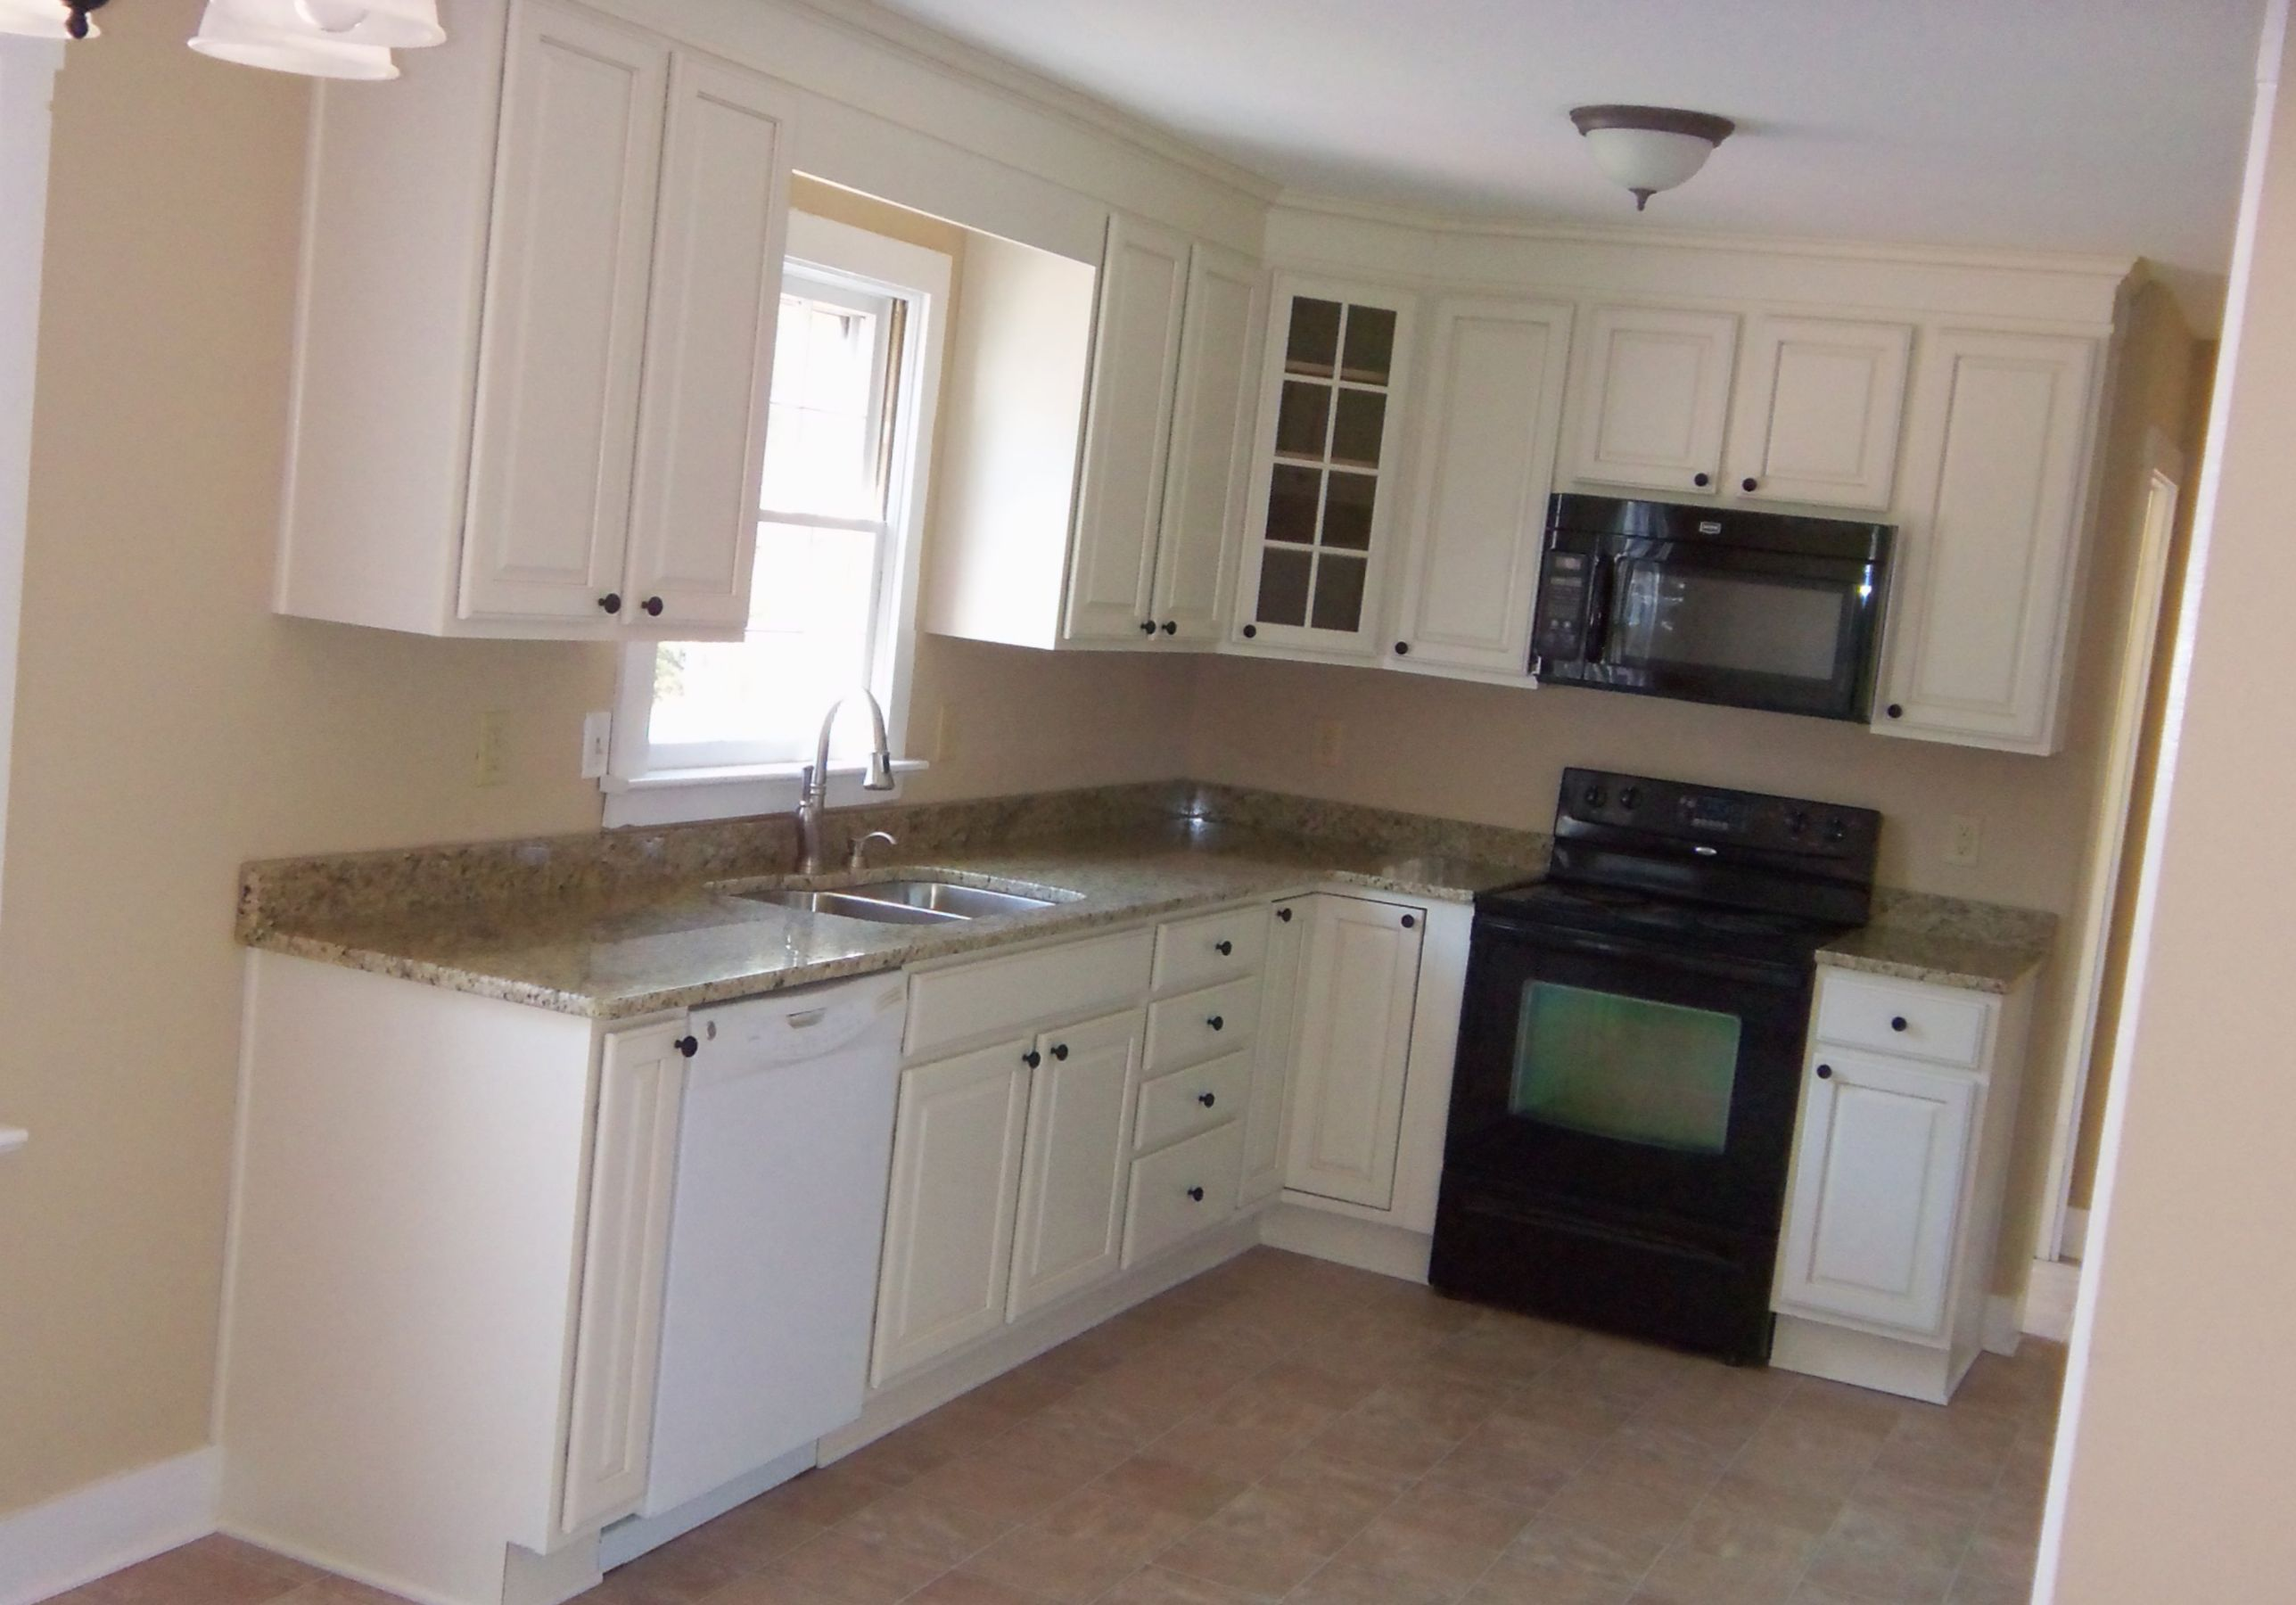 kitchen design layout ideas las vegas hotels with kitchens in rooms construct small l shaped designs layouts label